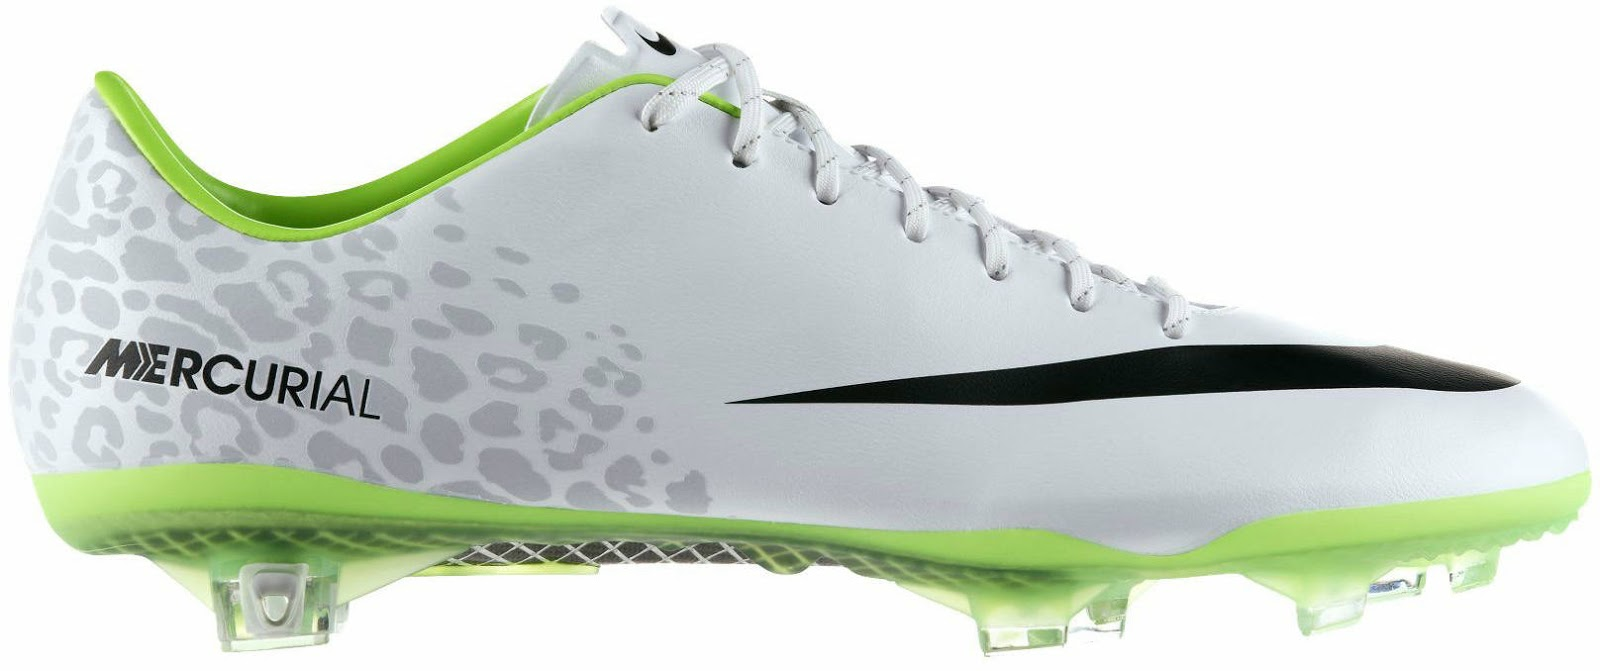 The inner sole and the outsole of this Nike Mercurial Vapor IX Colorway are  green, while on the upper appears the pattern of the coat of a fast animal  like ...